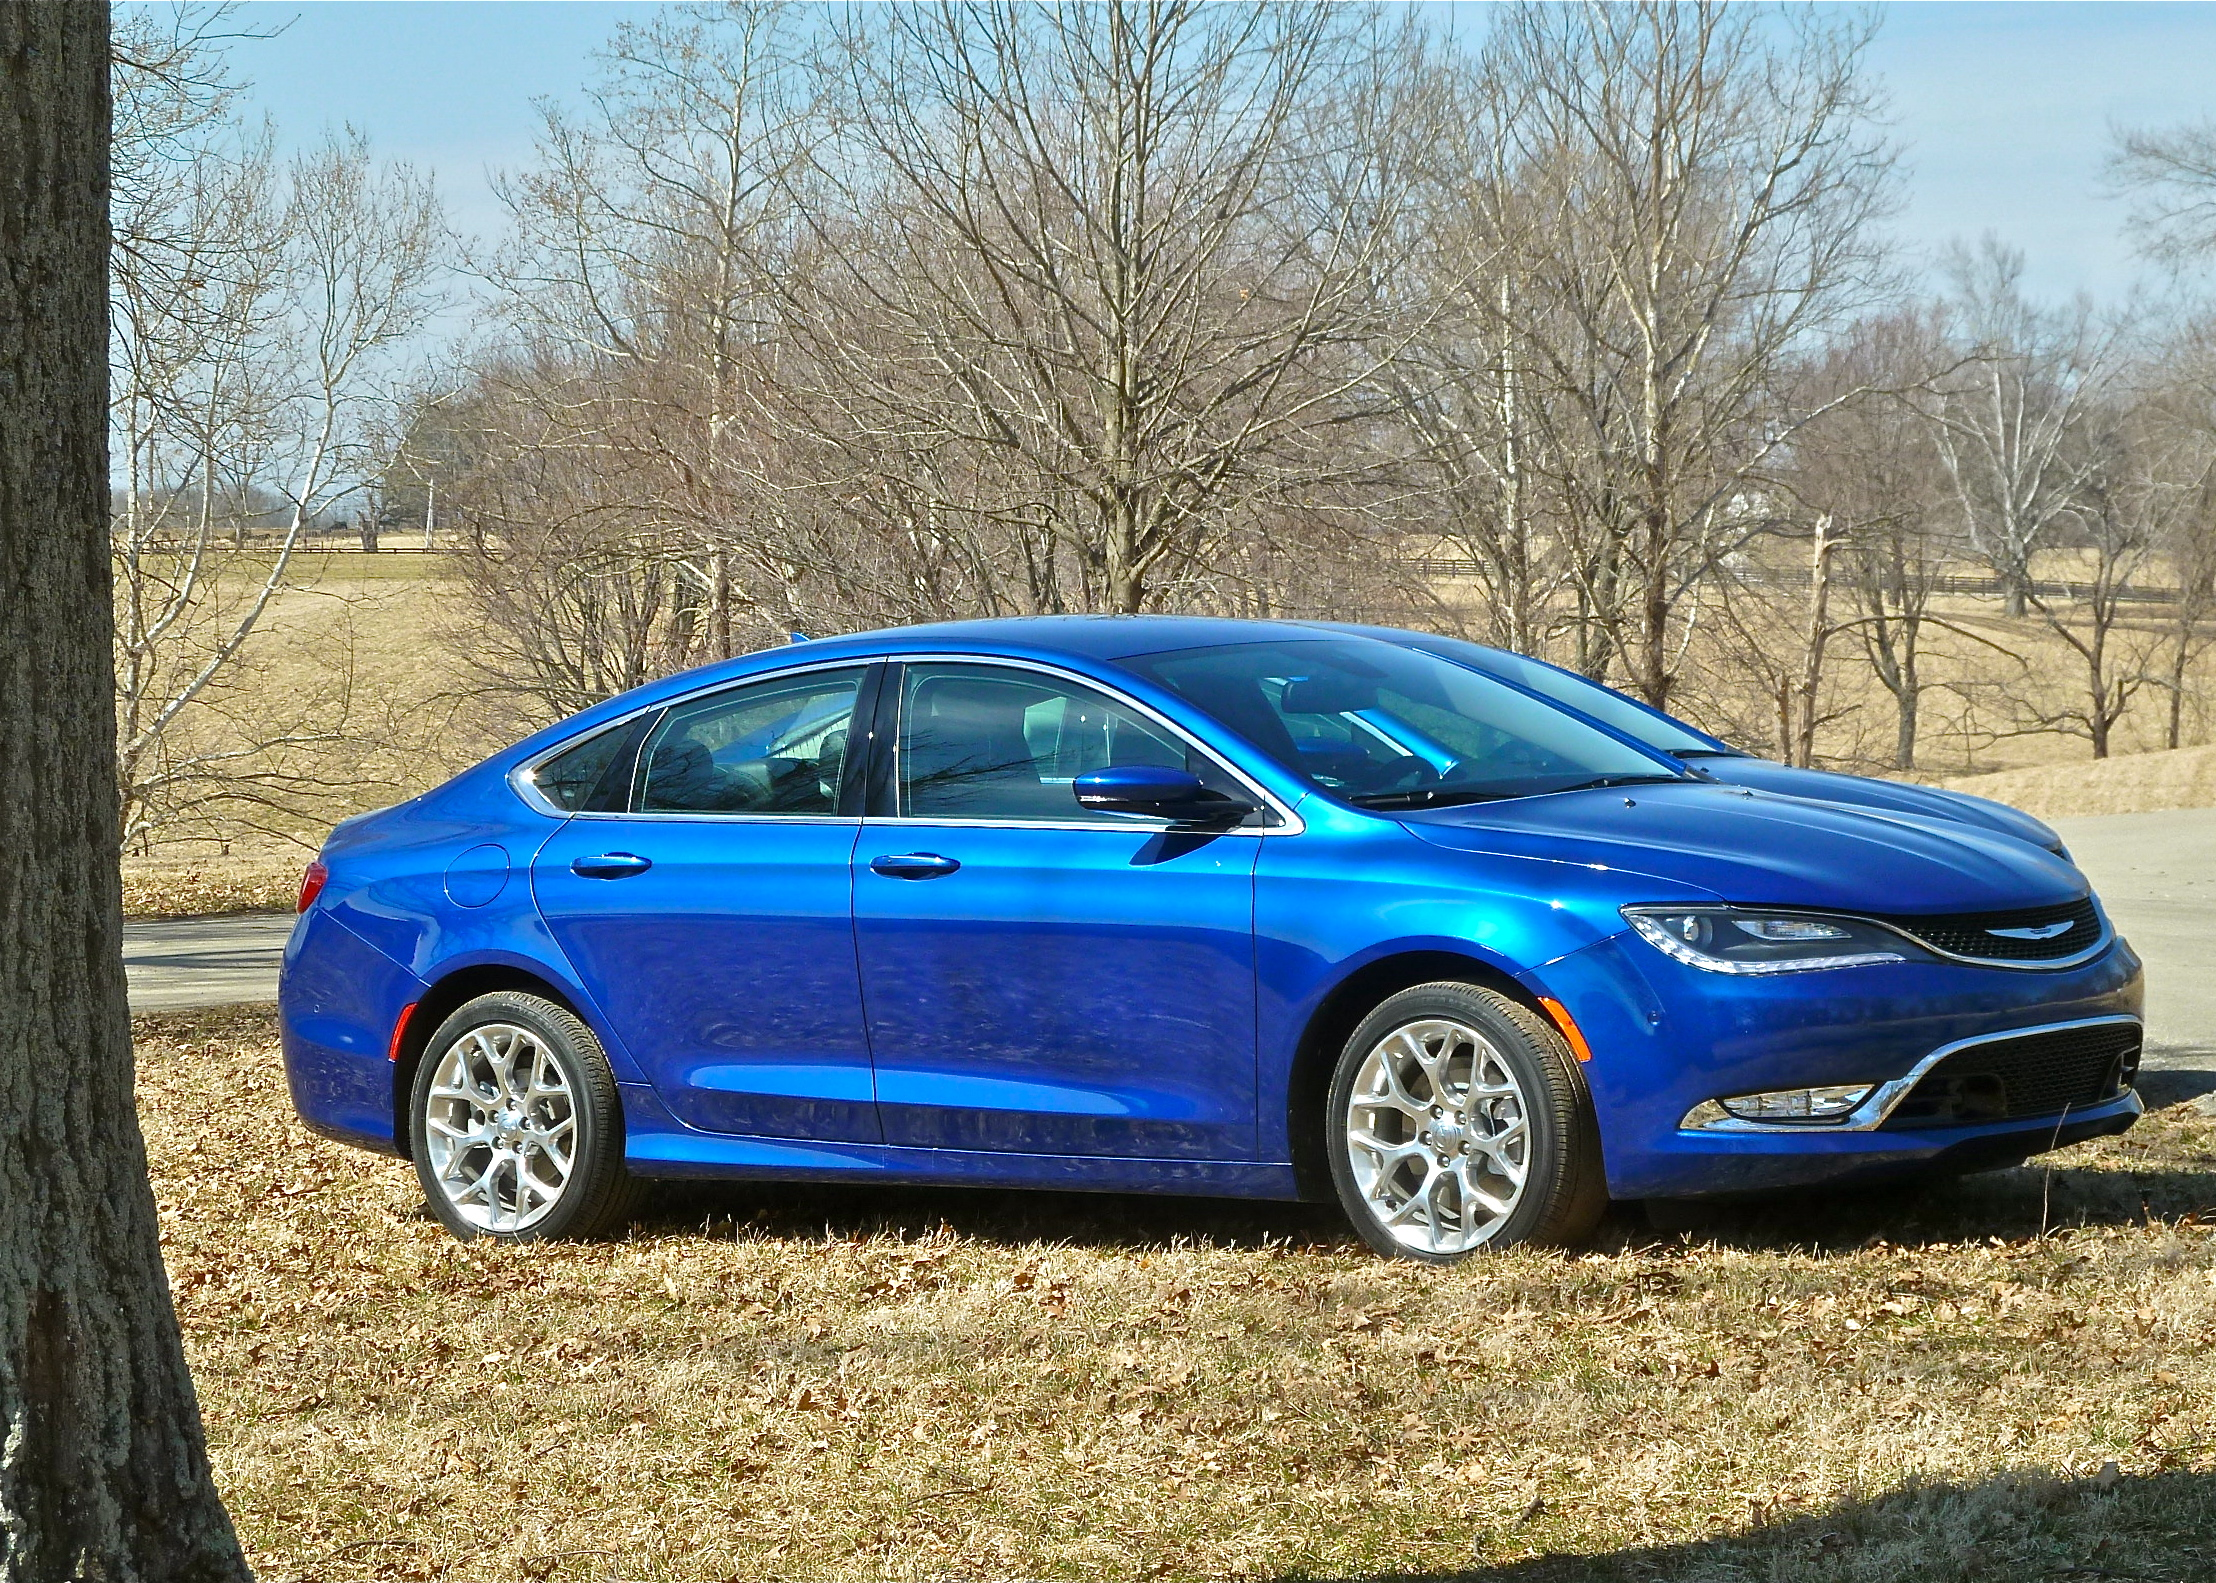 Stylish new Chrysler 200 is built on an Alfa Romeo platform.